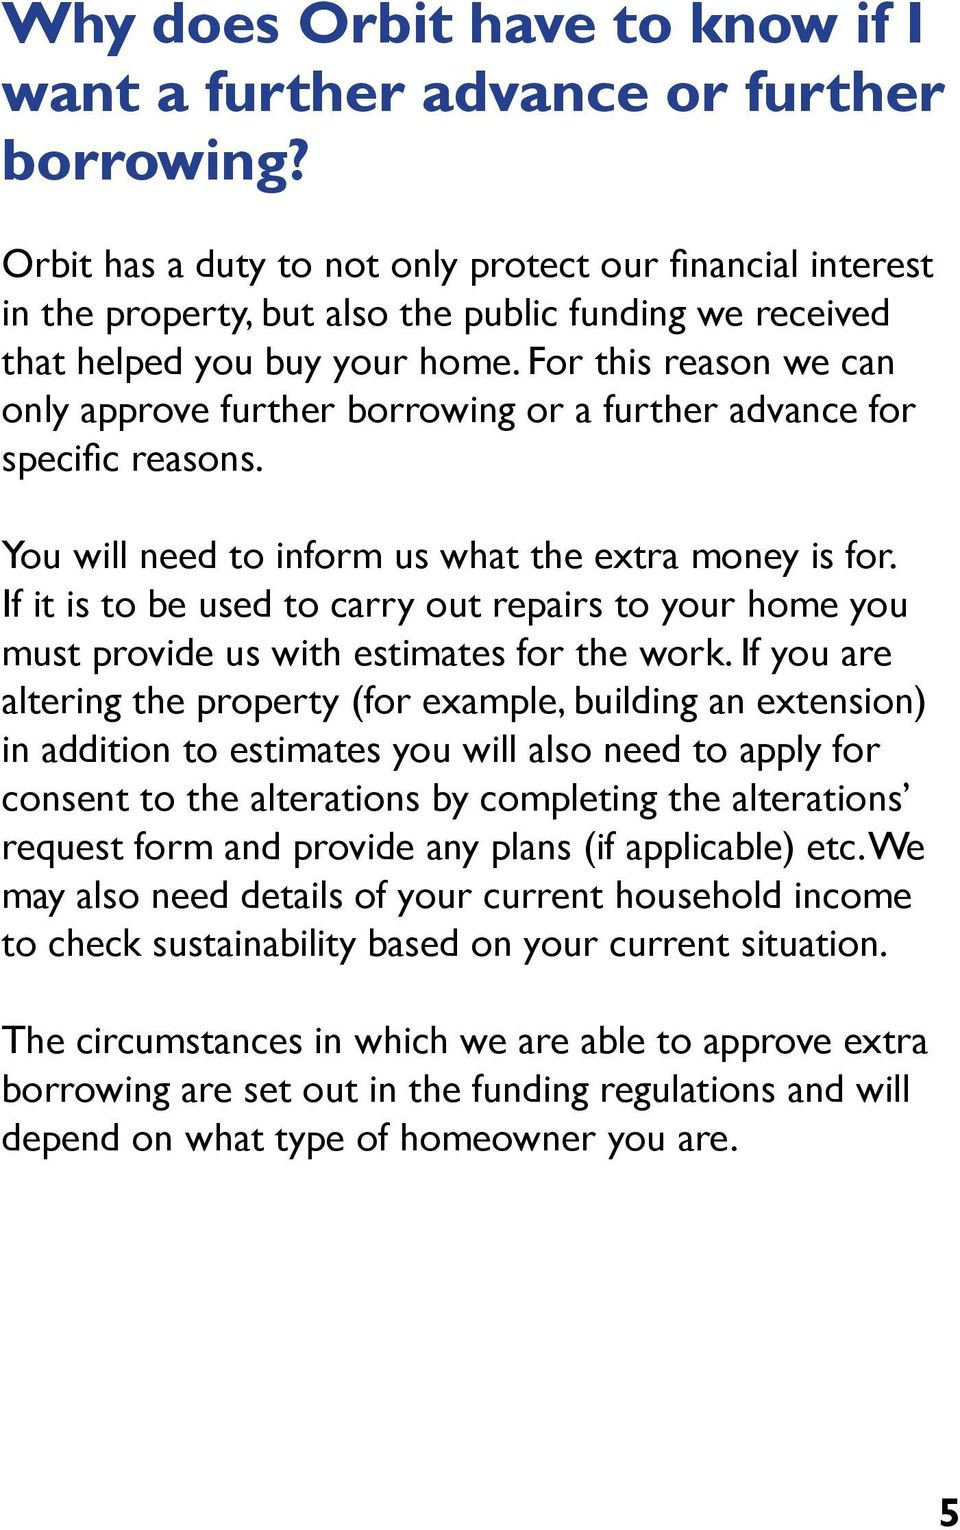 For this reason we can only approve further borrowing or a further advance for specific reasons. You will need to inform us what the extra money is for.